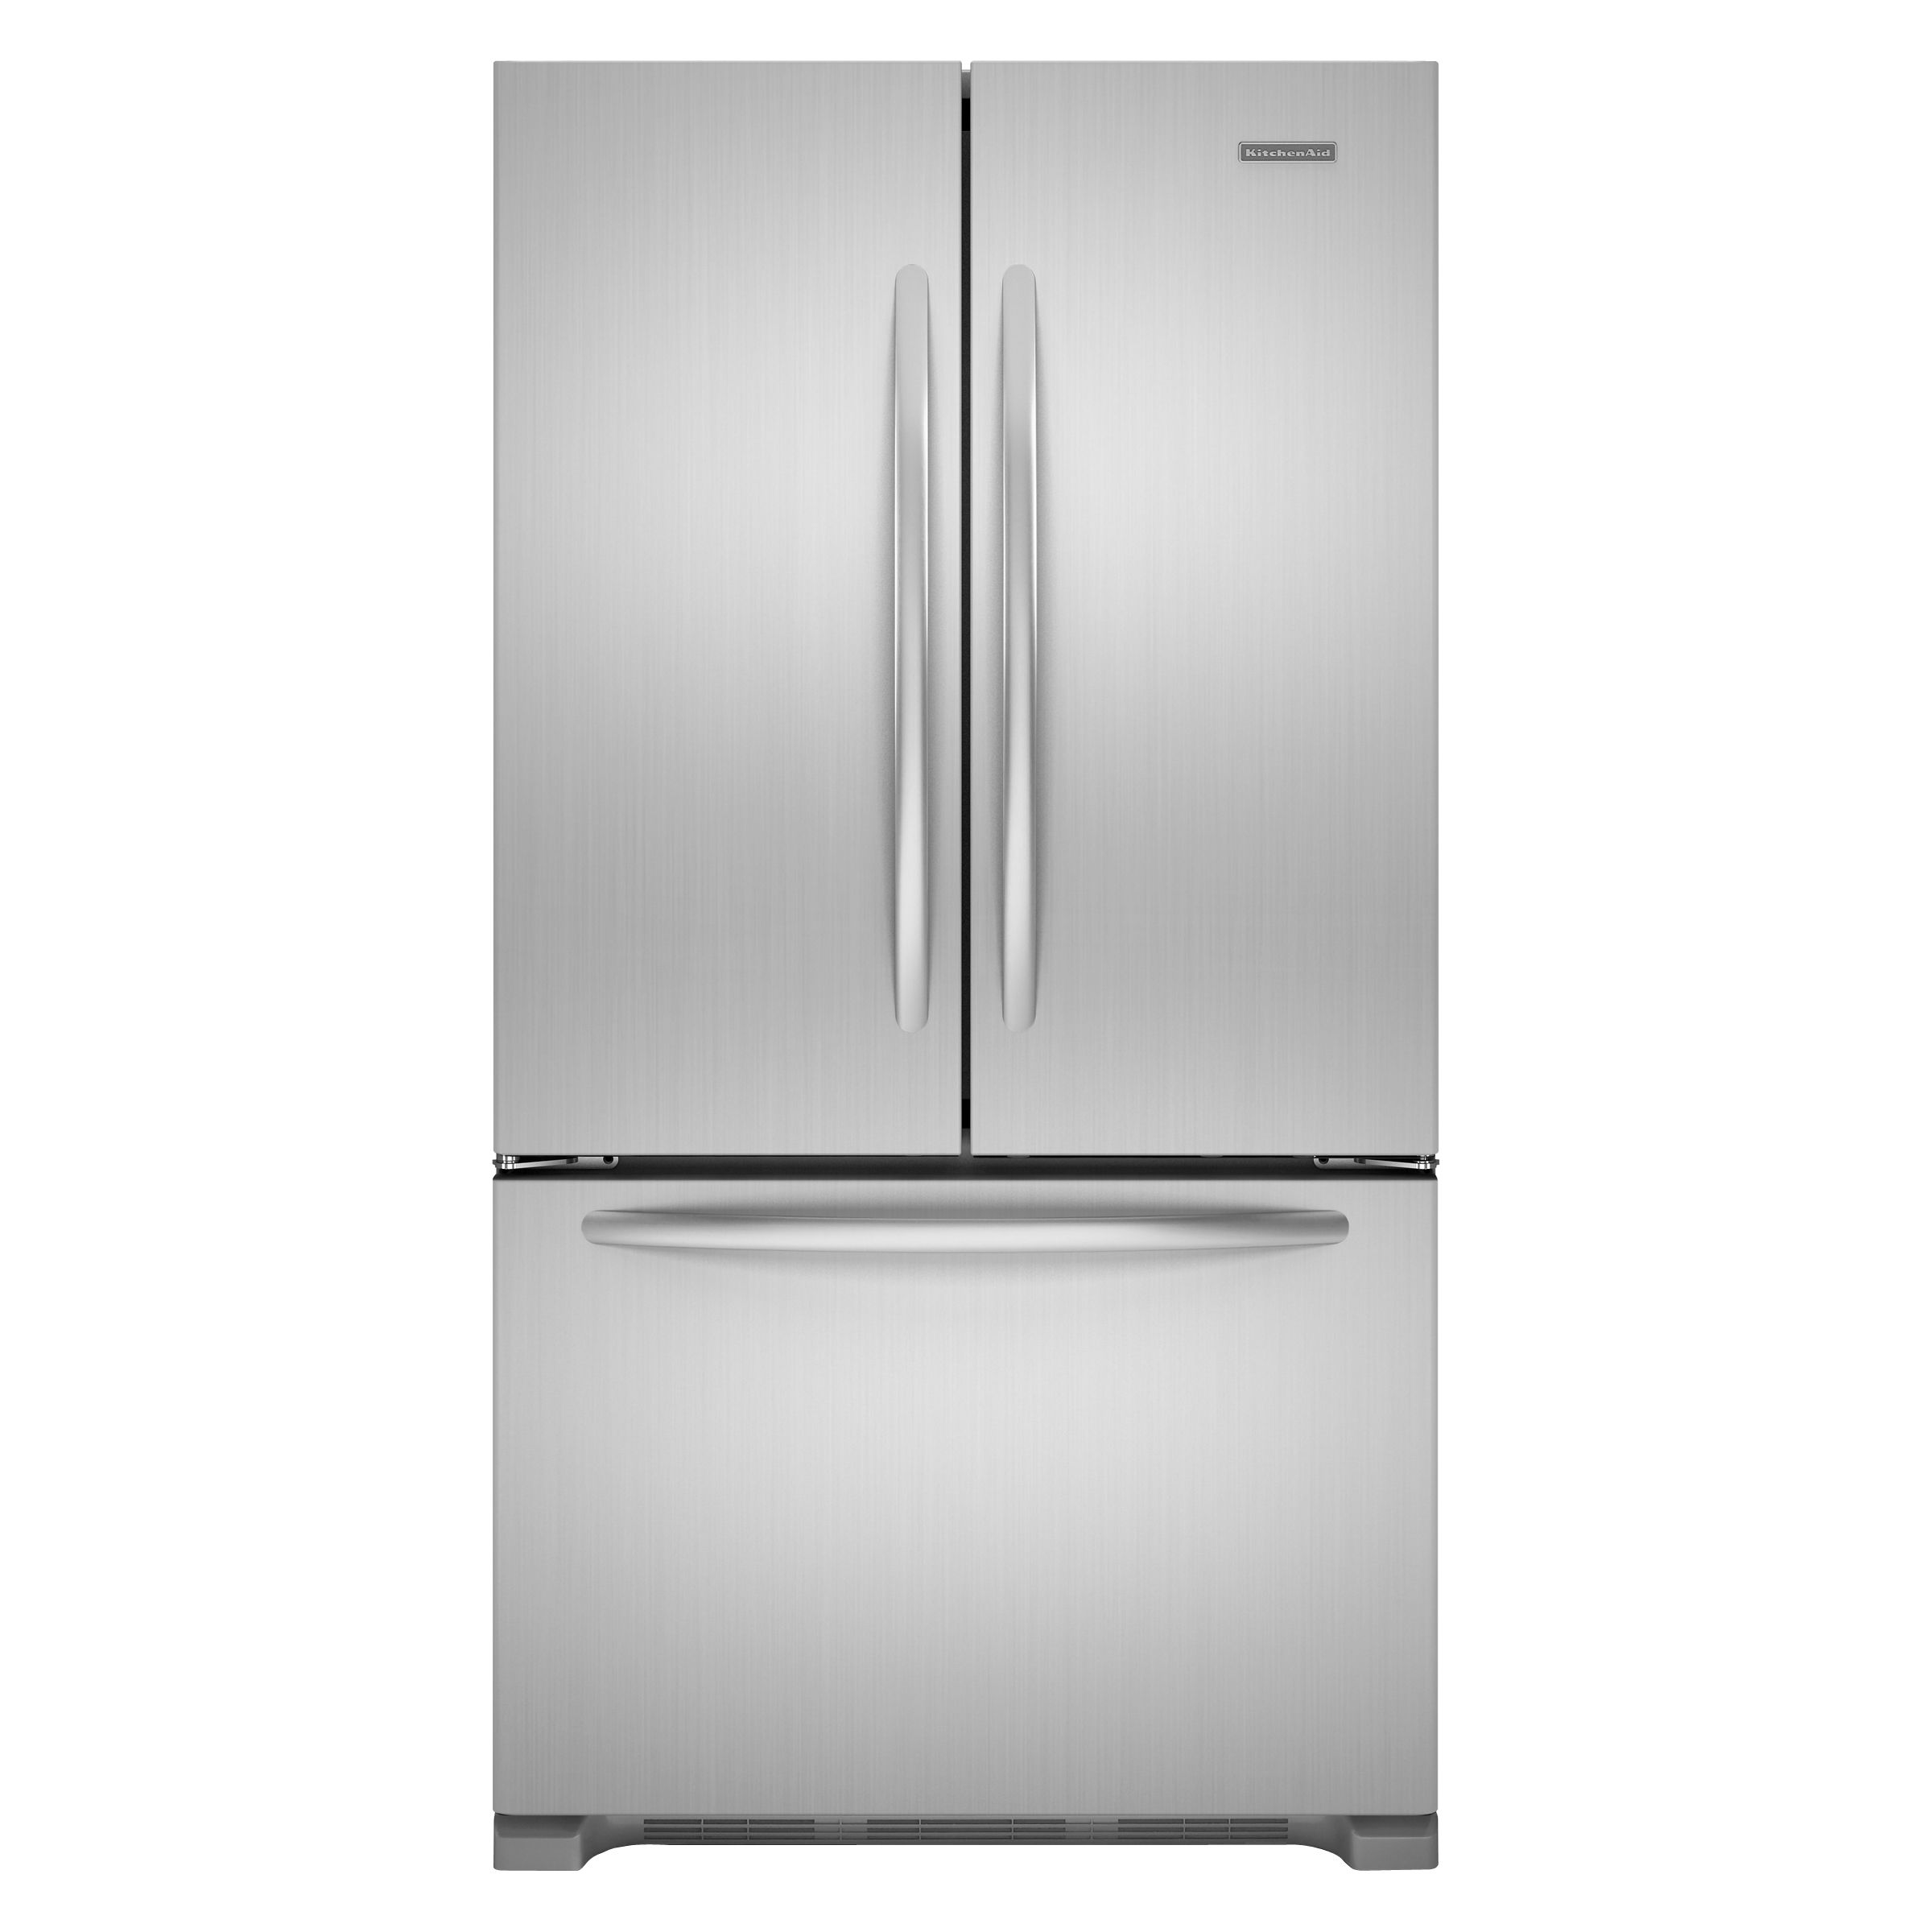 KitchenAid  21.8 cu. ft. French-Door Refrigerator w/ Internal Water